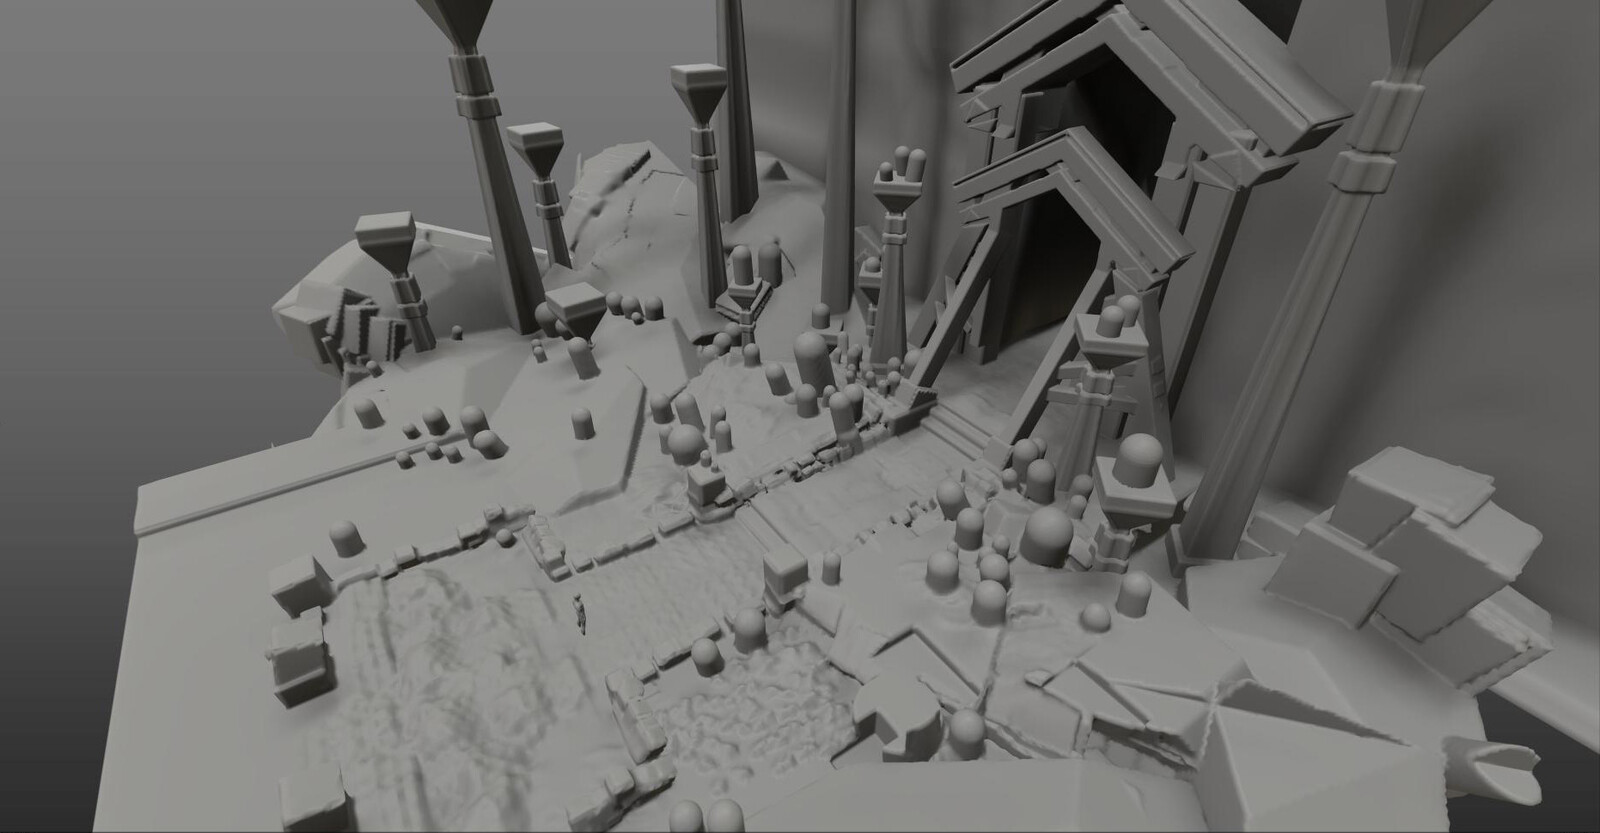 The set was initially blocked out in 3DCoat then drawn over/